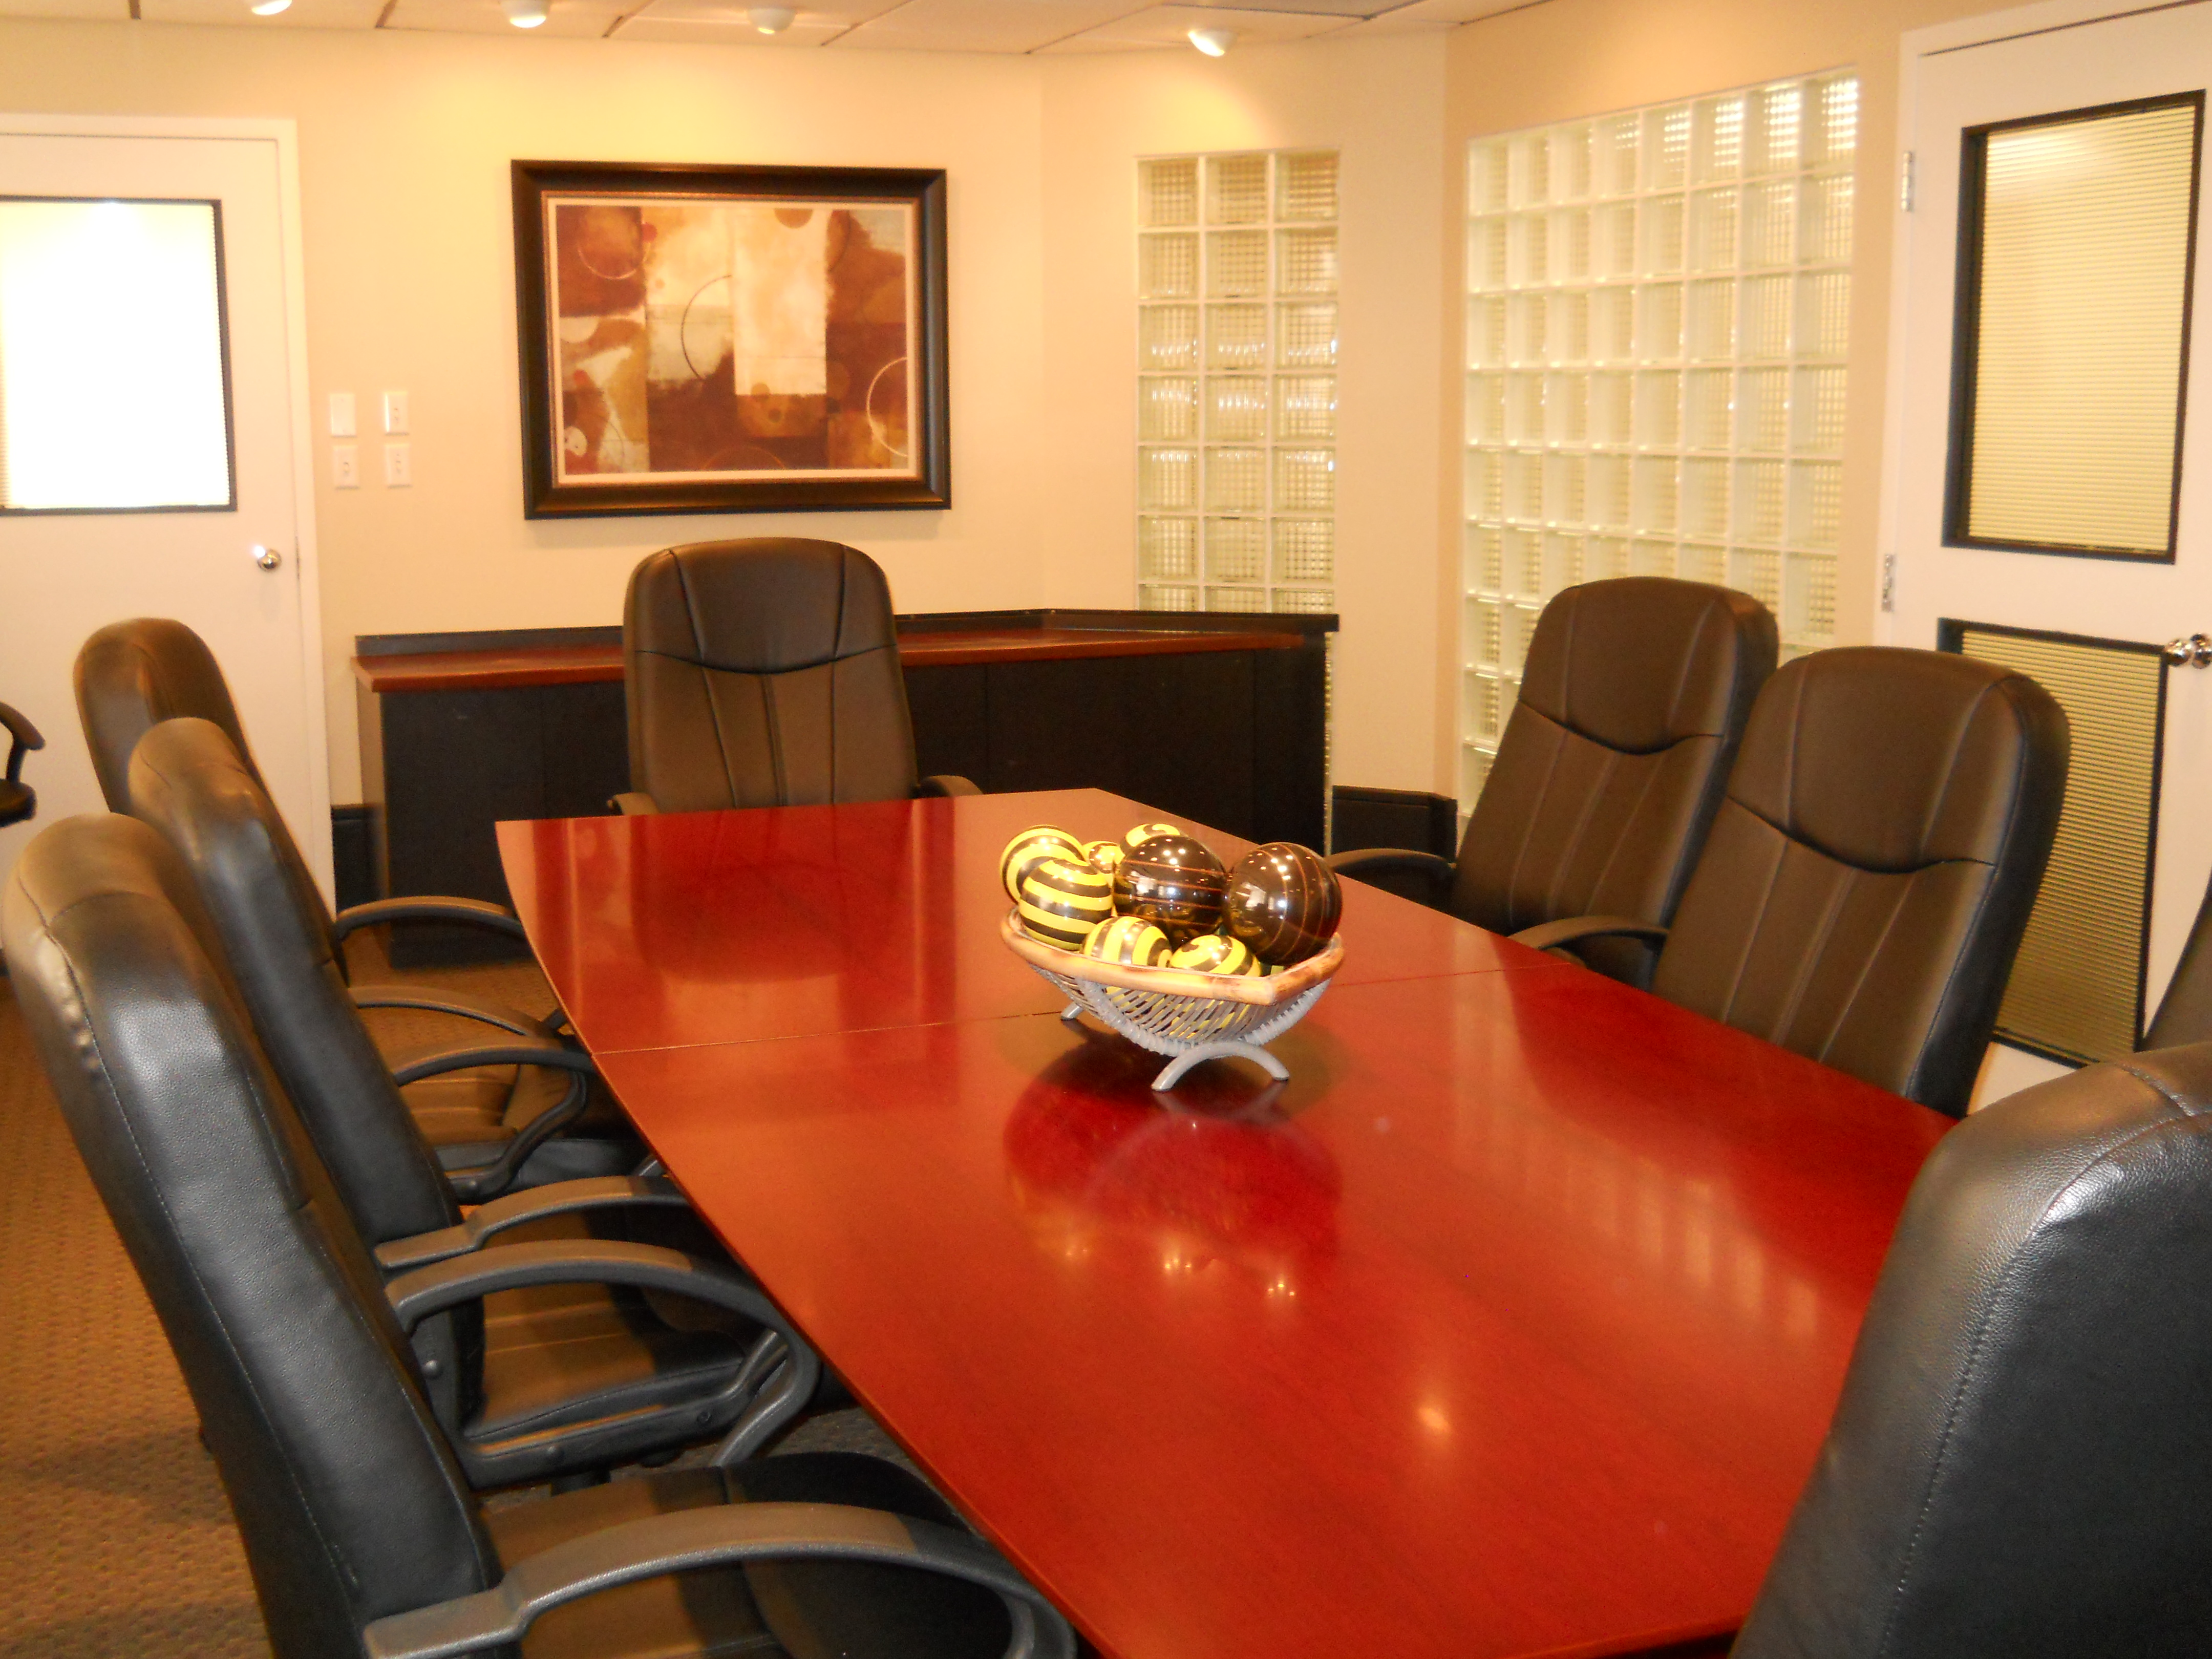 Alternate View of the Executive Conference Room